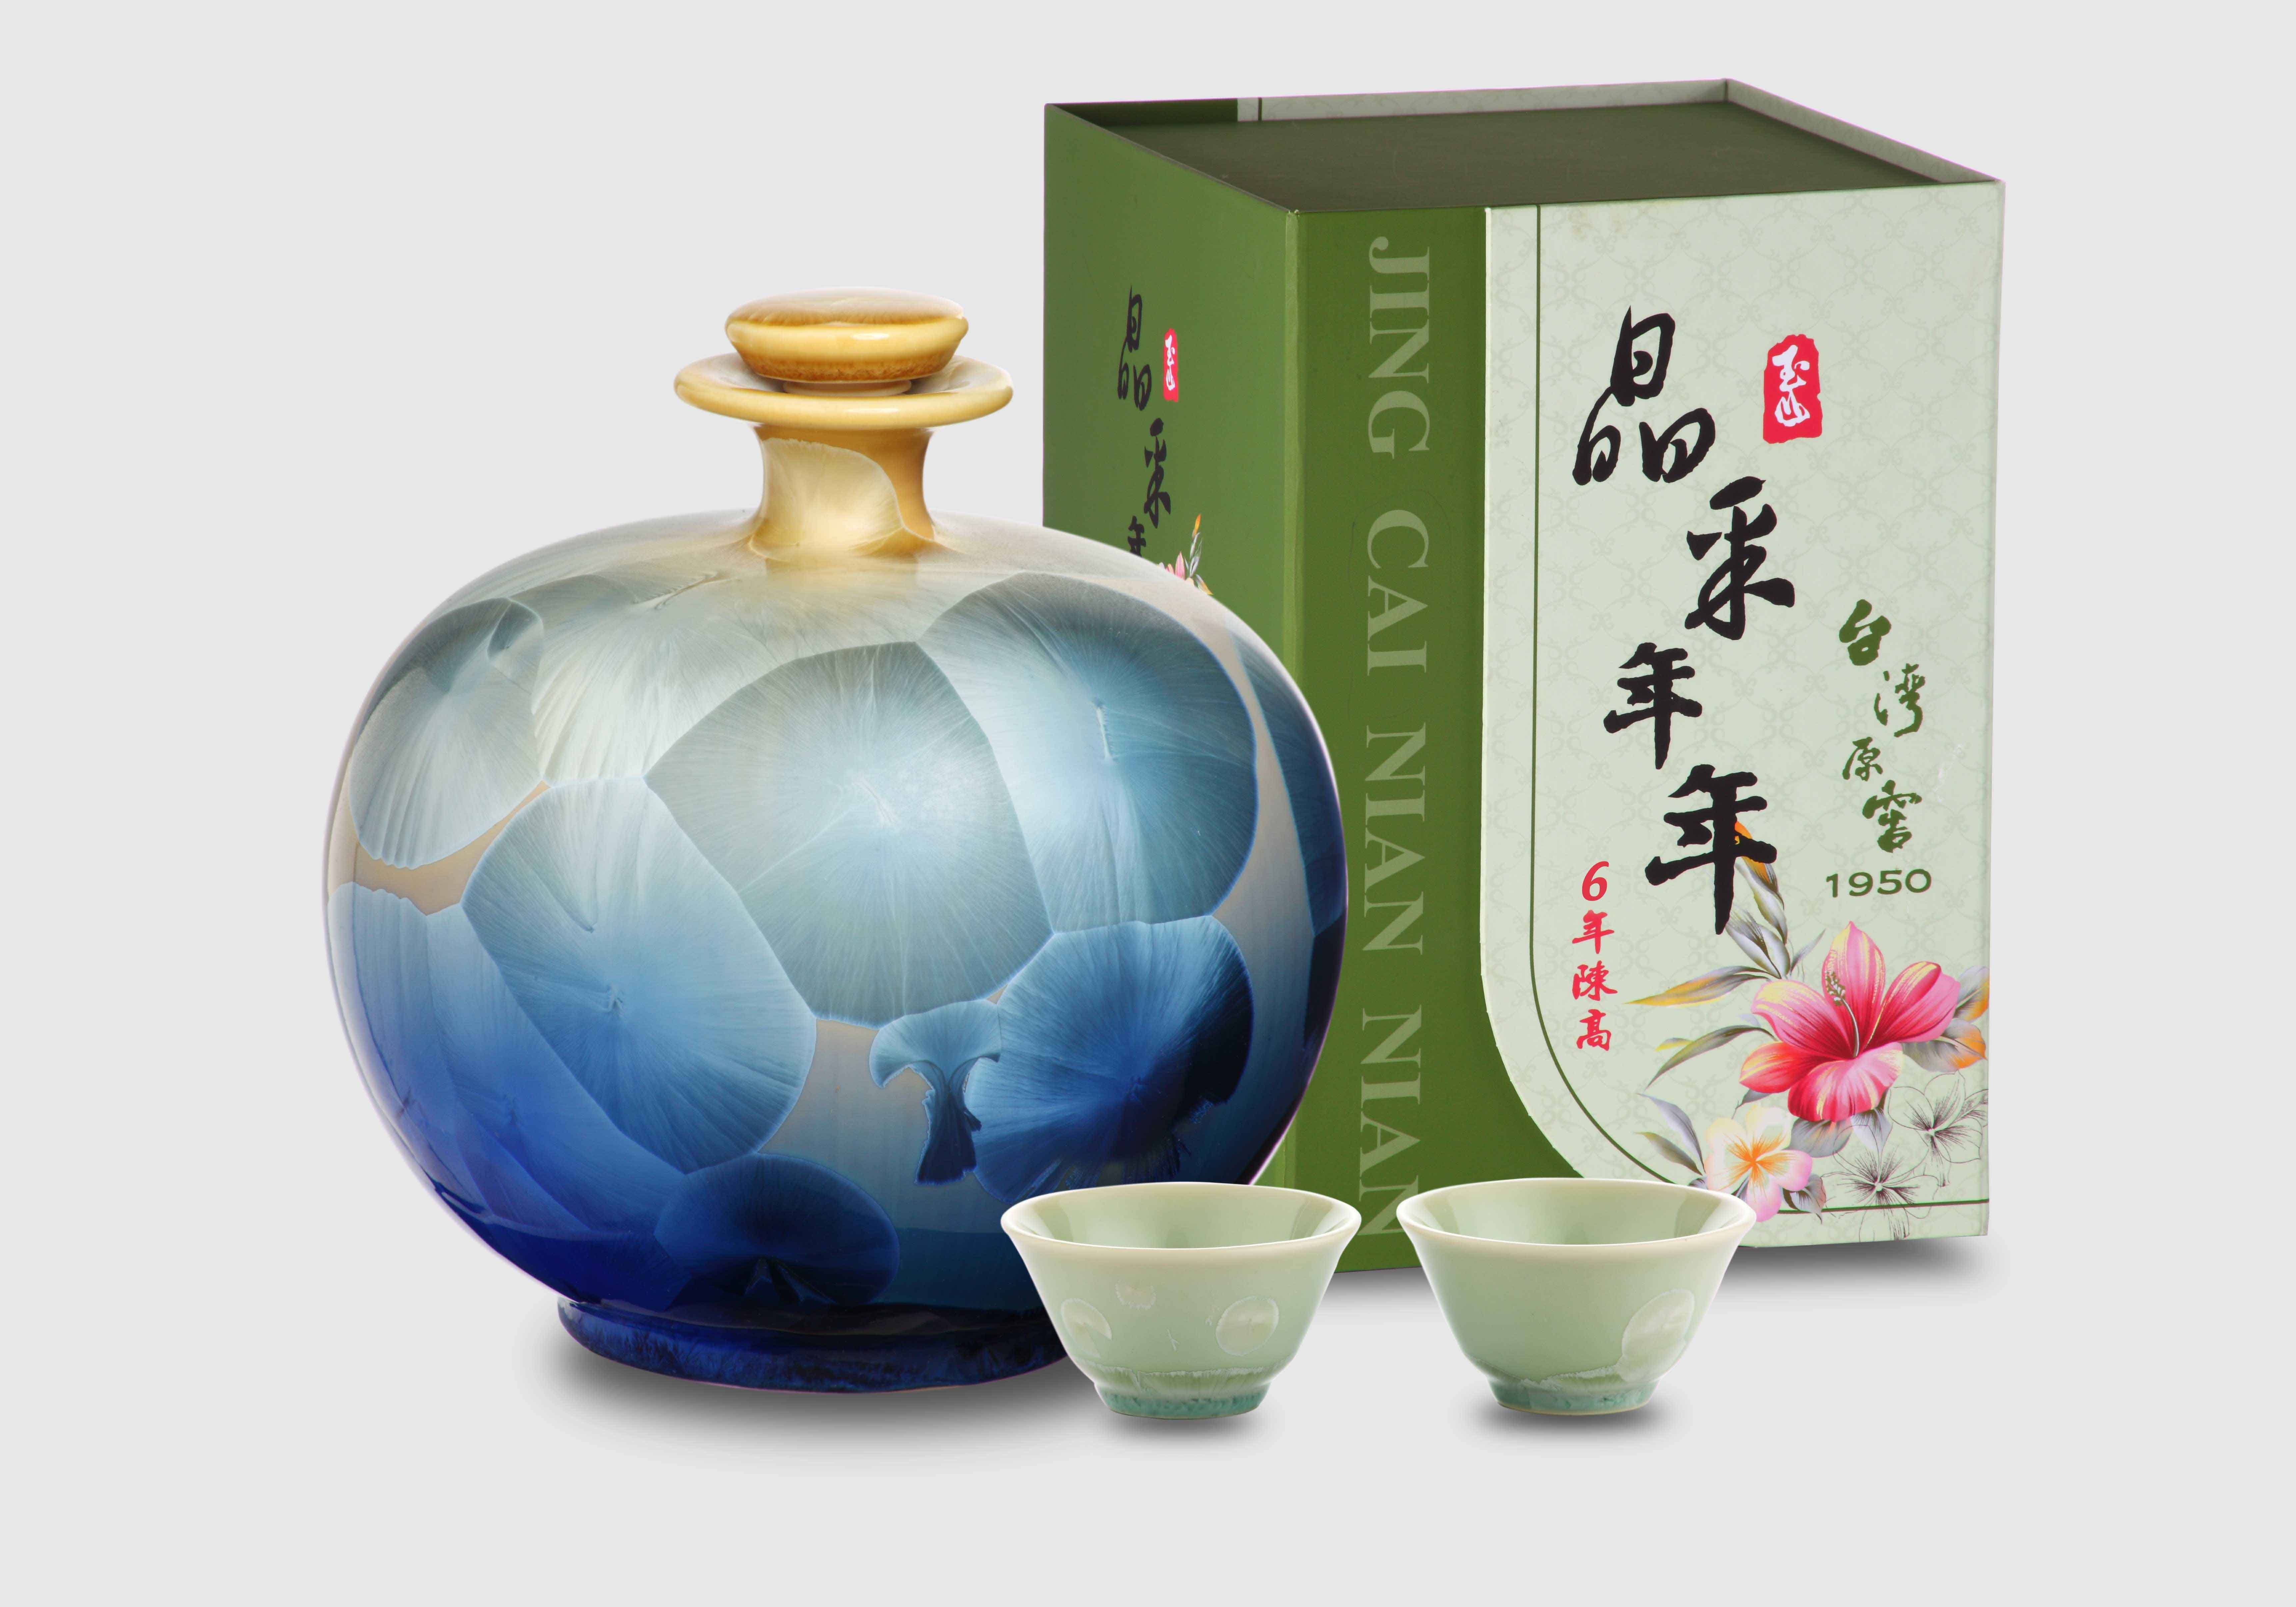 FEATURING PRODUCT IN AUGUST-Jing Cai Nian Nian